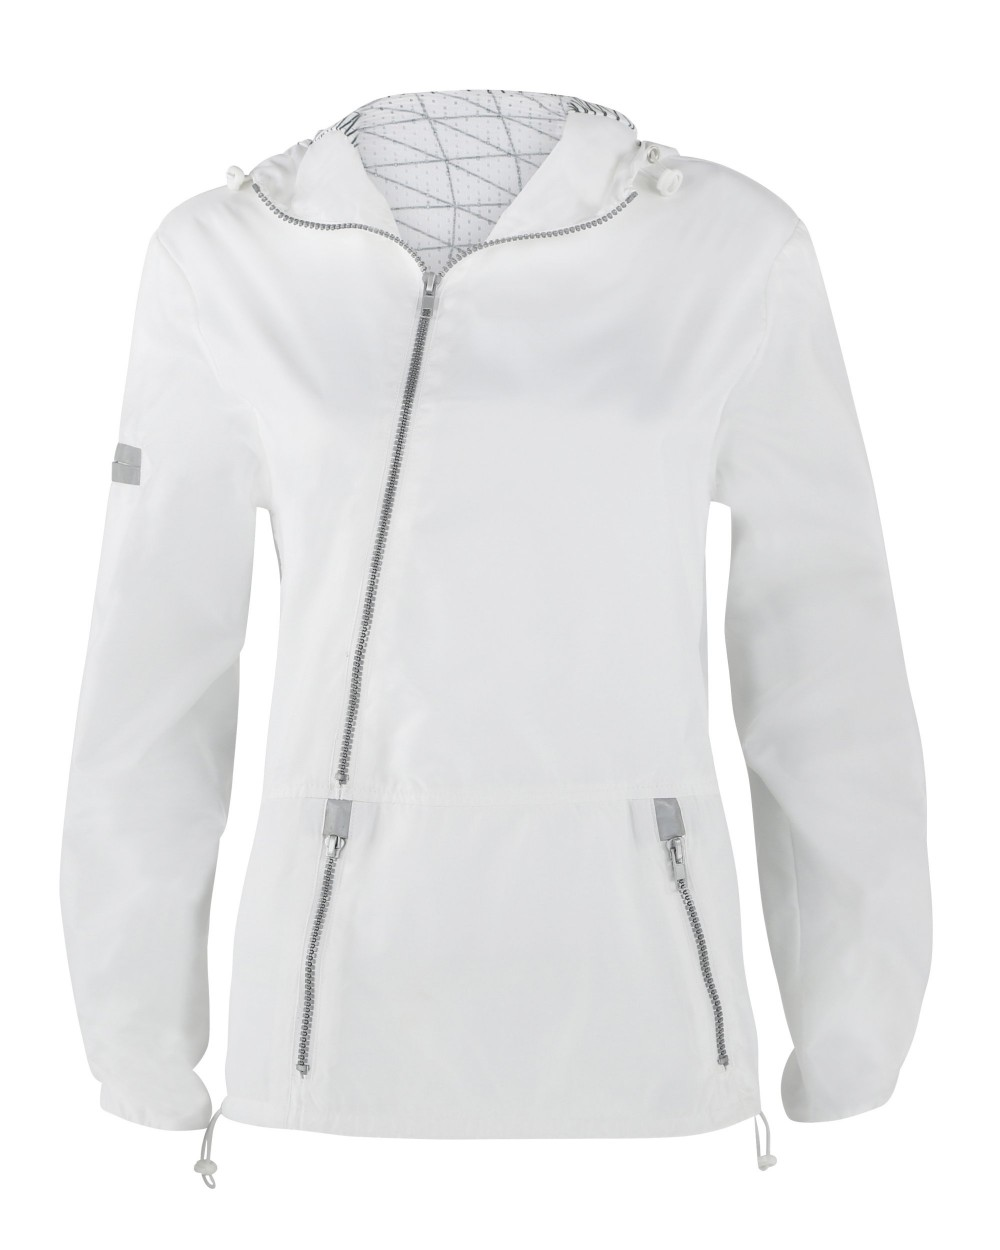 windproof-running-jacket-for-women-max.jpg